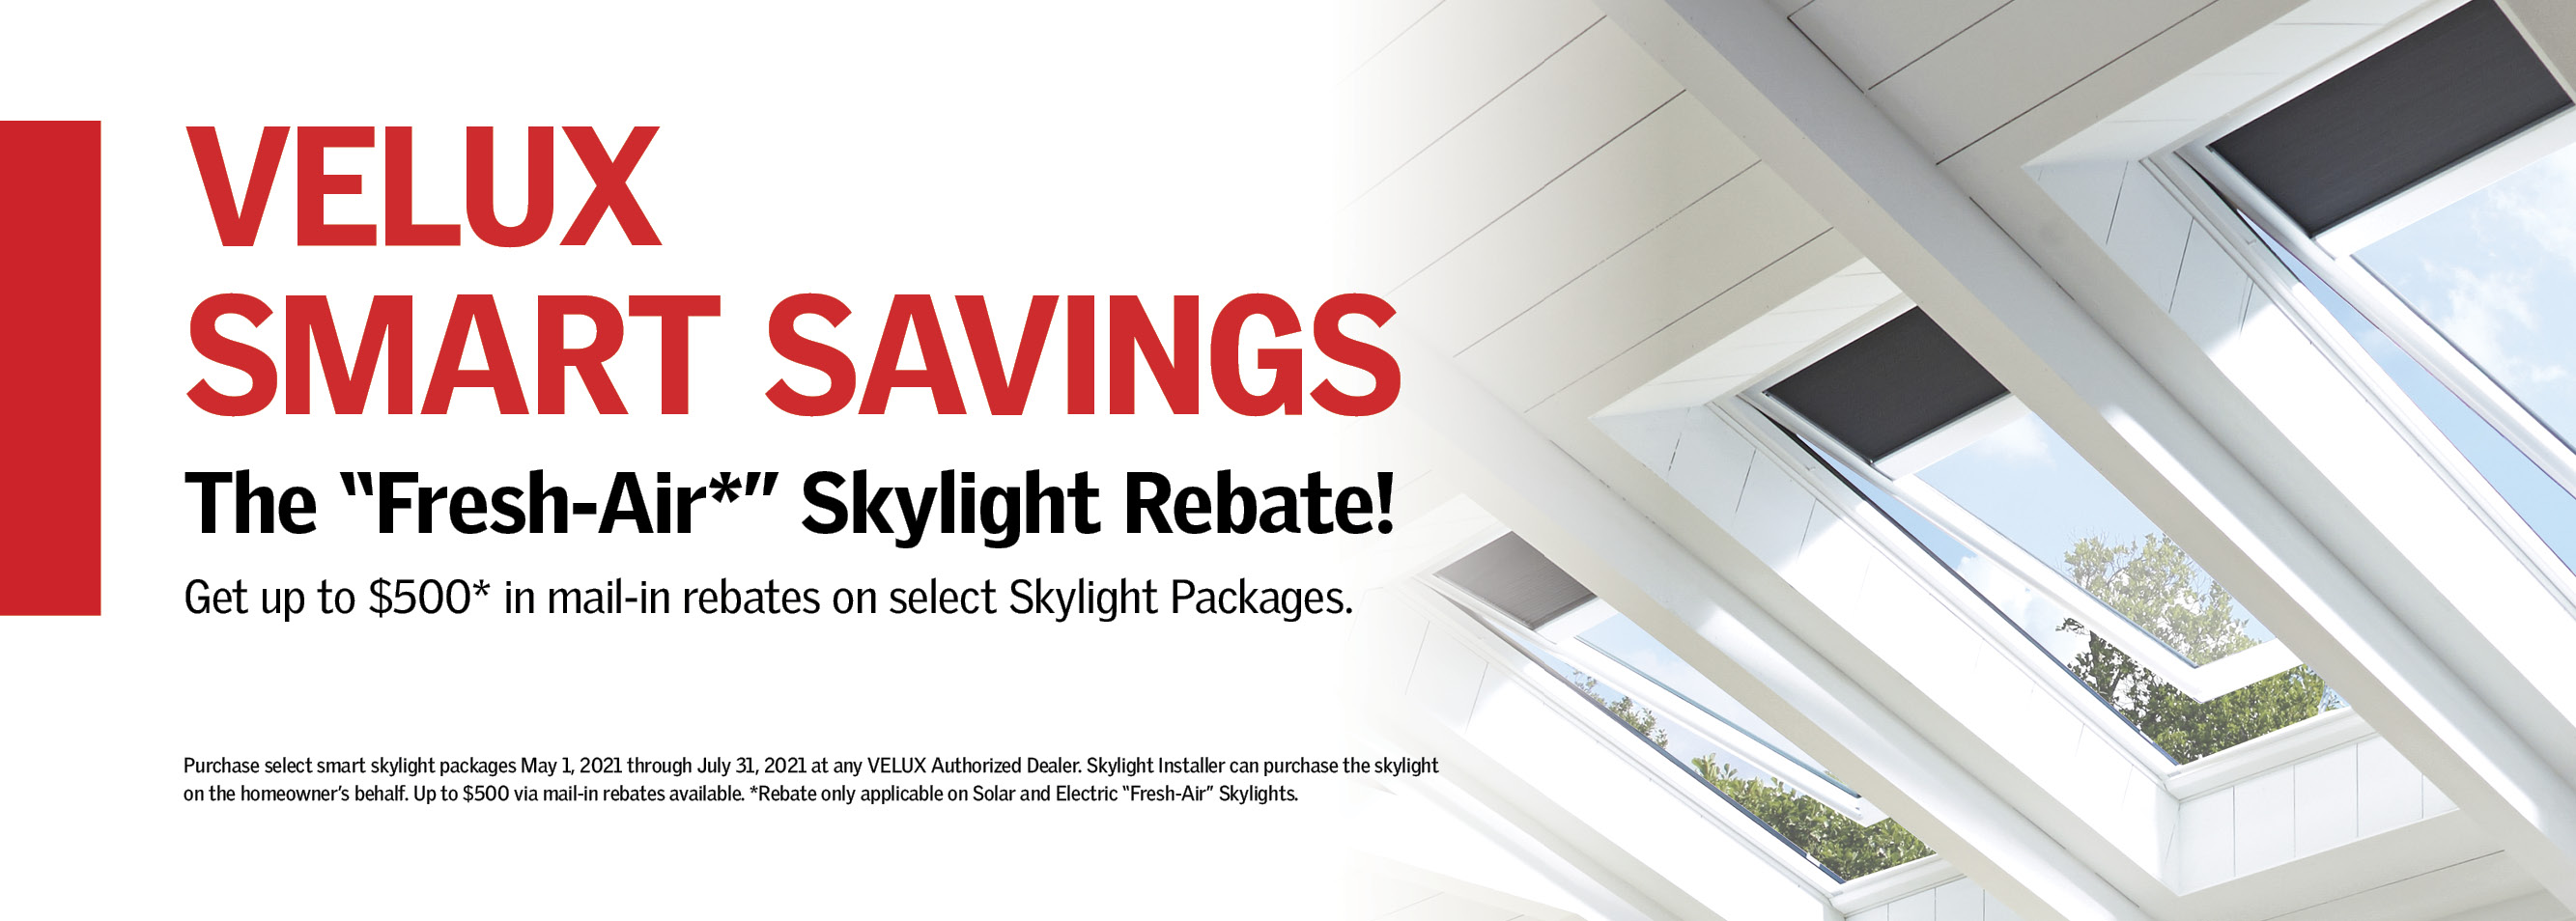 Get up to $500* in mail-in rebates on select Skylight Packages!